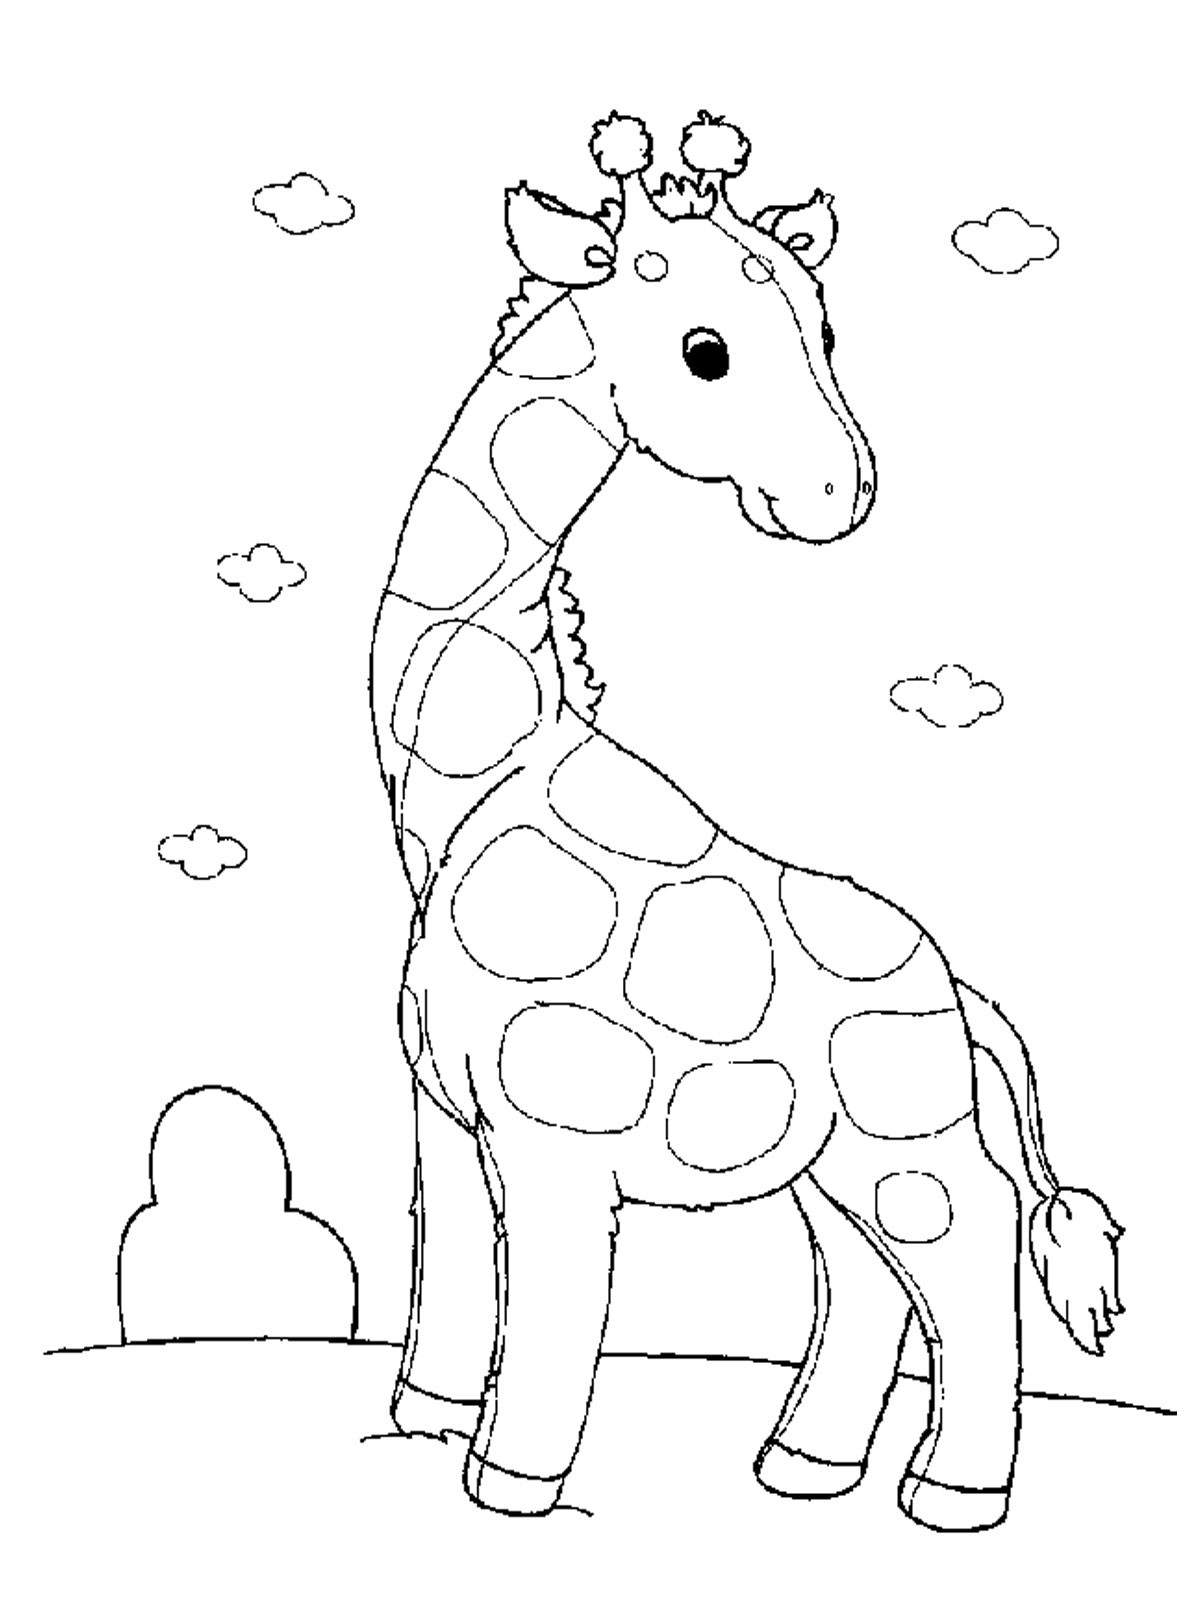 Printable Coloring Pages Of Animals  Free Printable Giraffe Coloring Pages For Kids